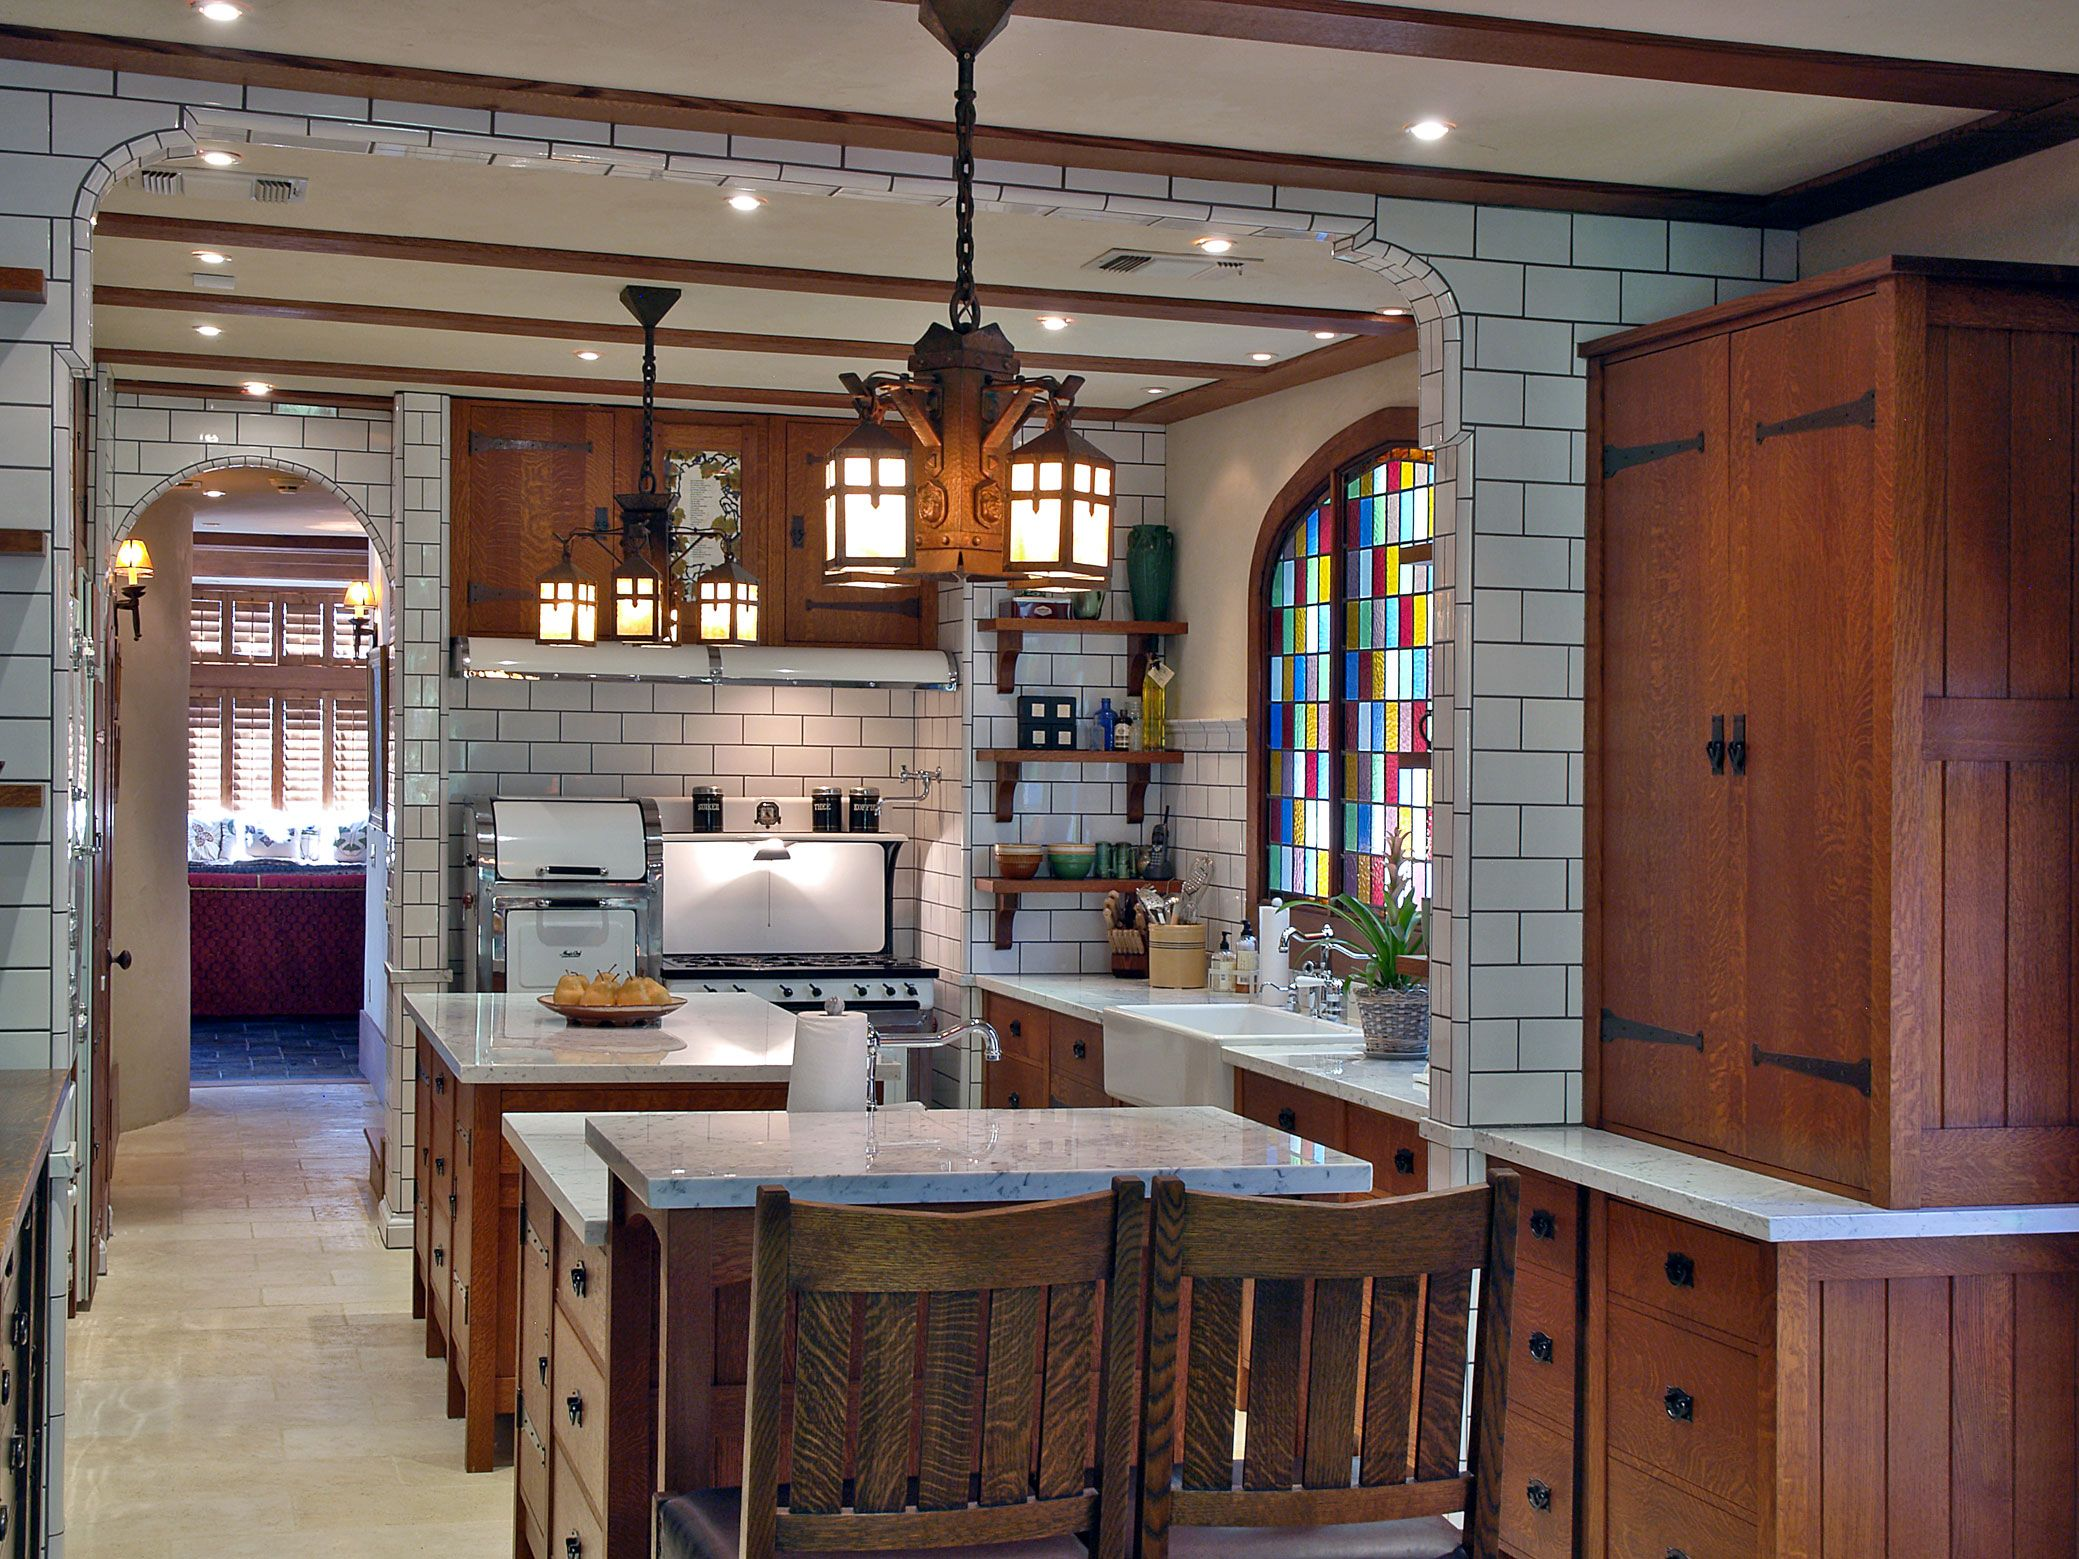 Arts U0026 Crafts Spanish Revival Bungalow: Oak Custom Kitchen Cabinets With  Black Hinges And Pulls, White Stone Counter, White Subway Tiles/dark Grout,  ... Part 43